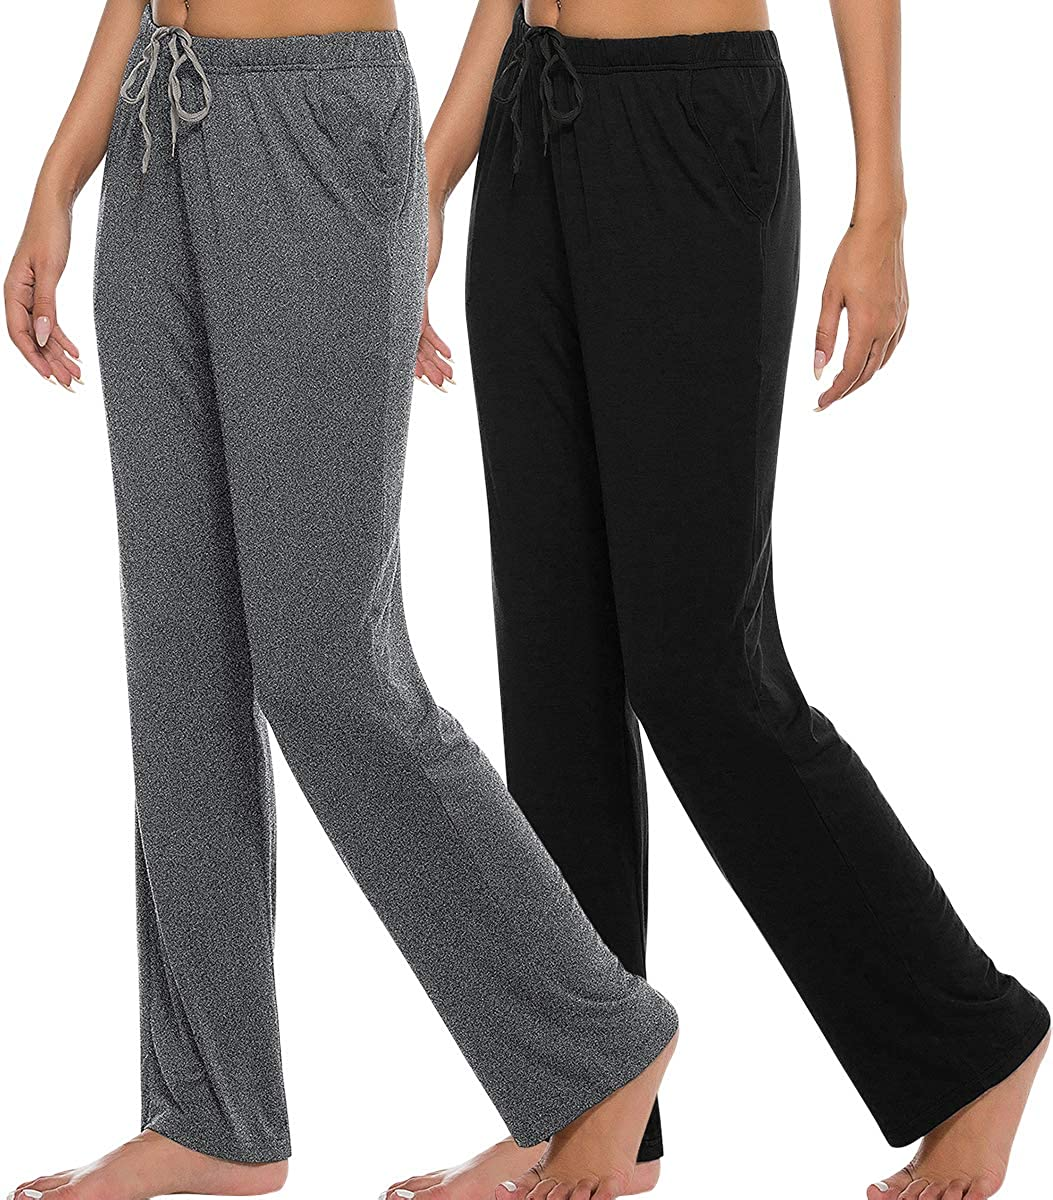 AIRIKE Women's Pajama Pants Elastic Waisted Lightweight Woven Lounge Pants Loose Fit Stretch Yoga Pants with Pockets, 2 Pack